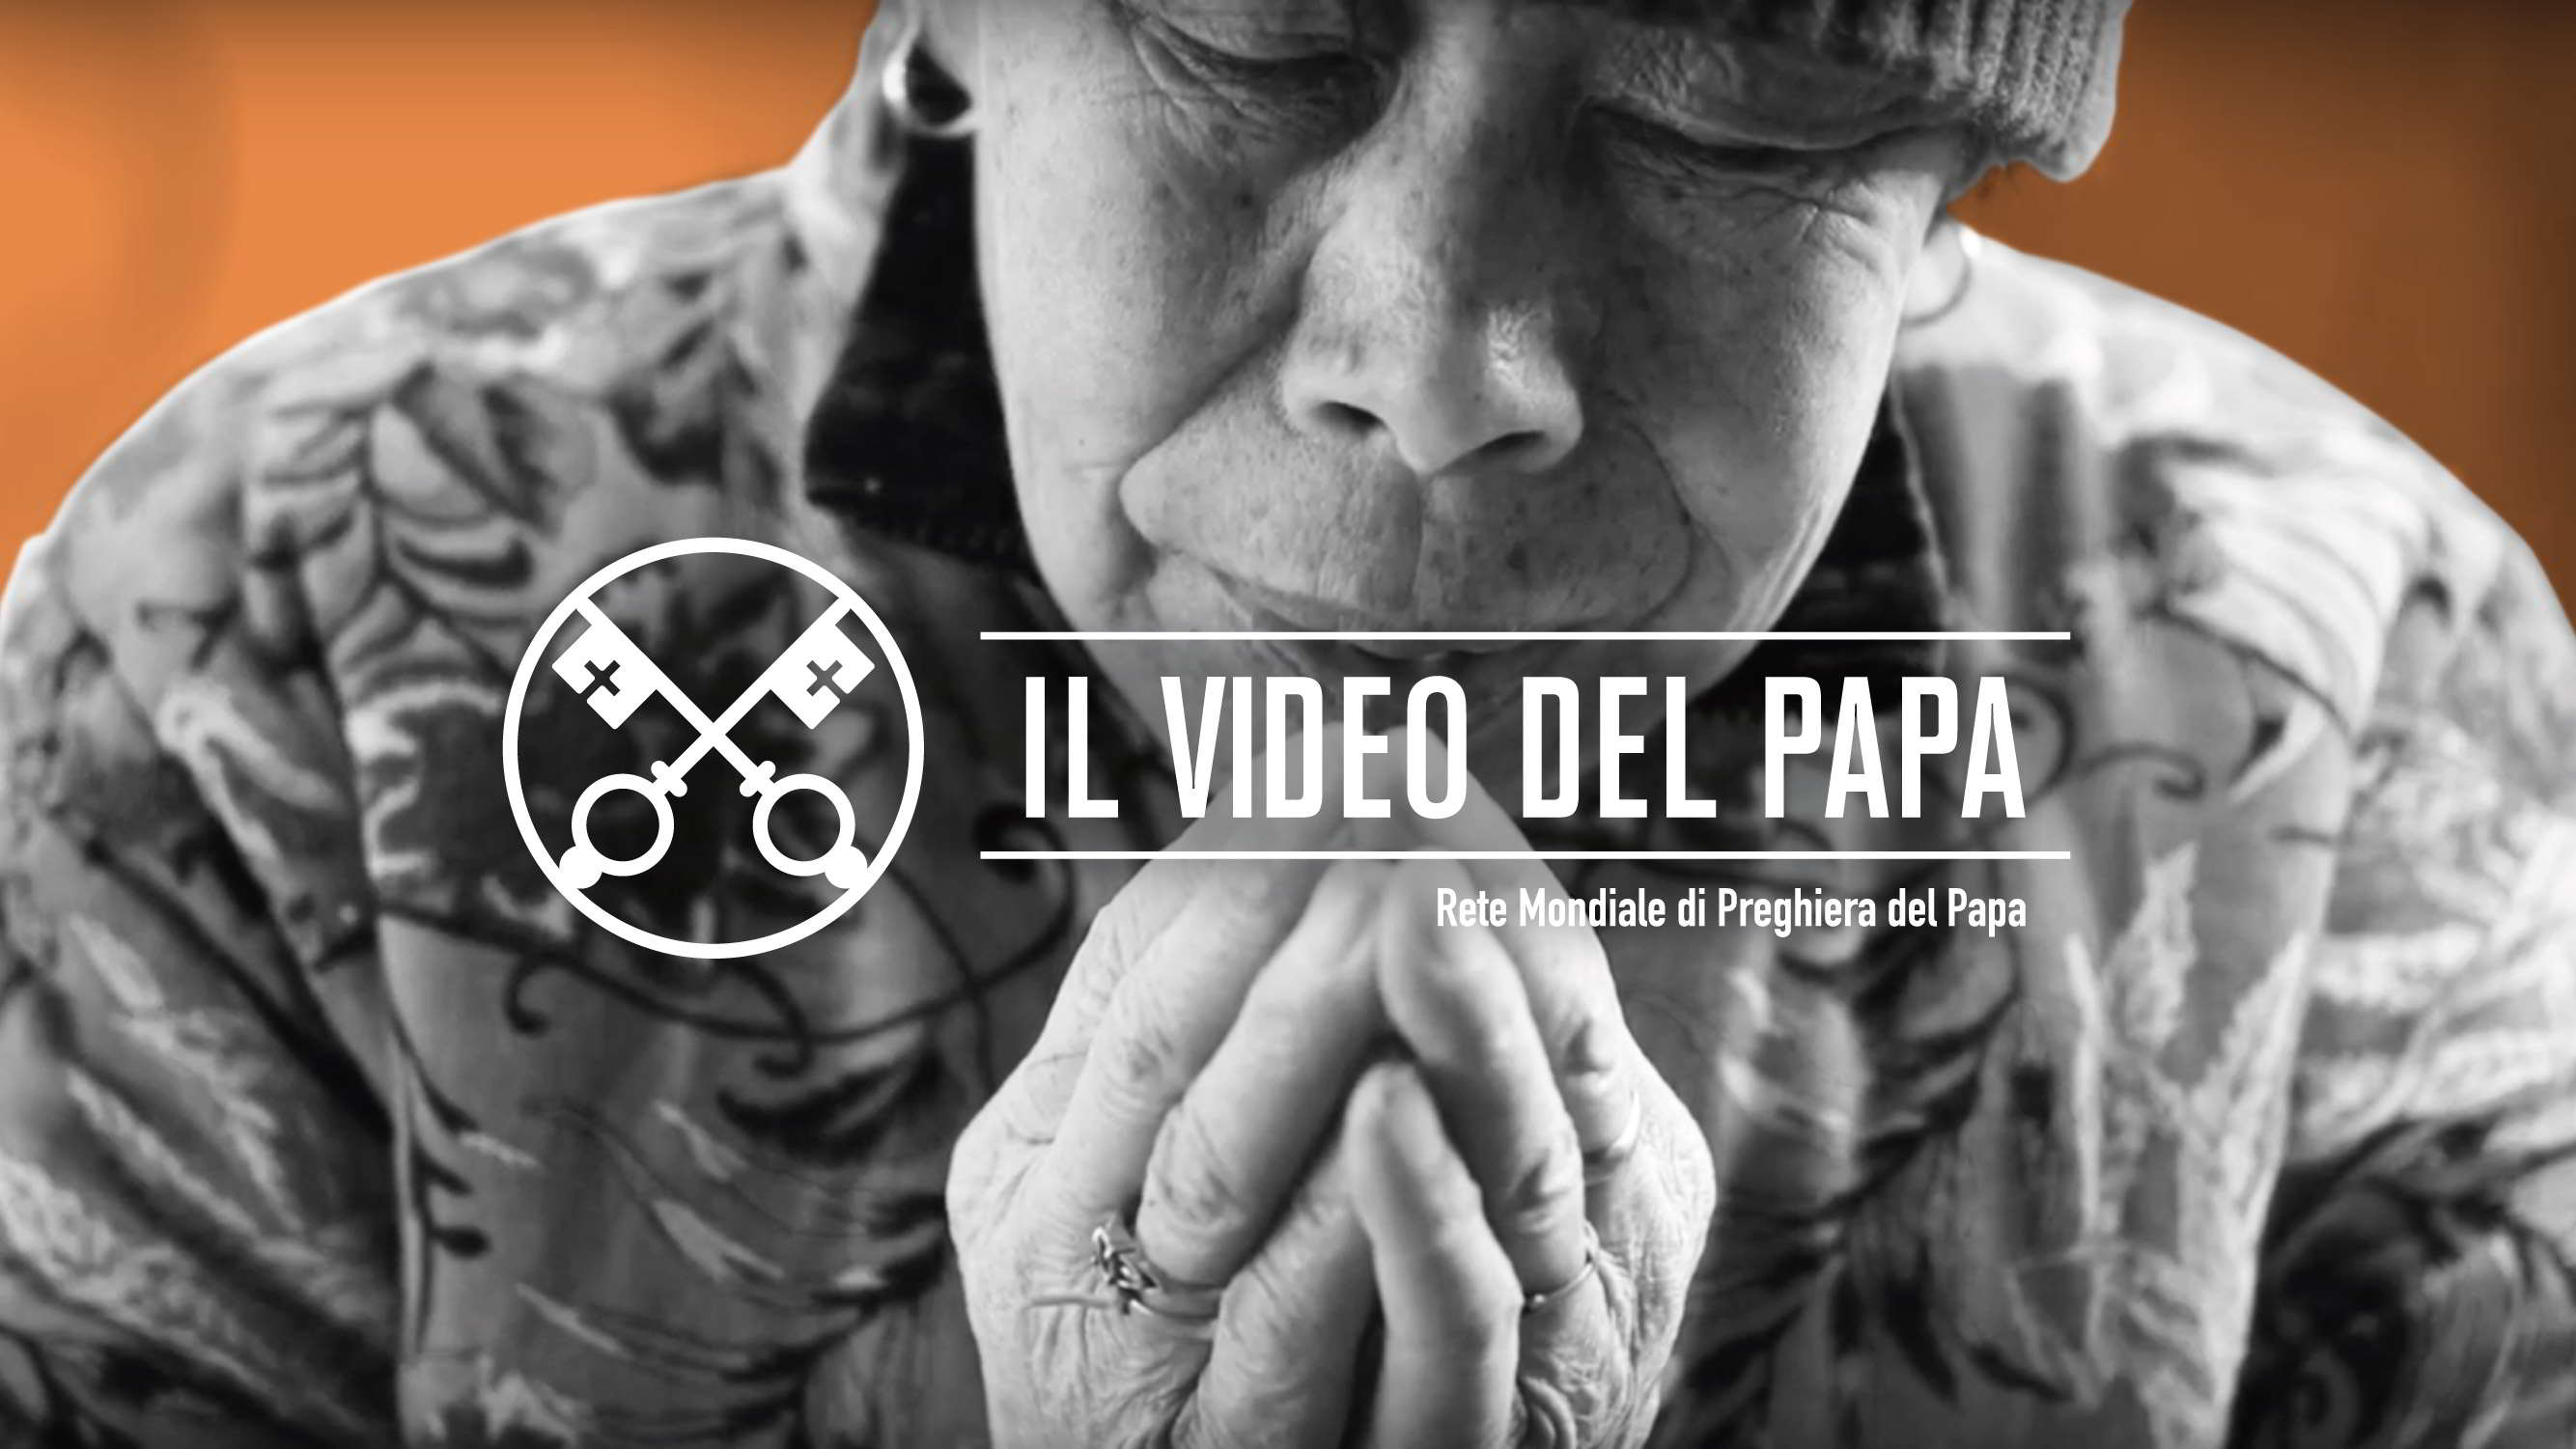 Official-Image-TPV-3-2020-IT-Il-Video-del-Papa-I-cattolici-in-Cina